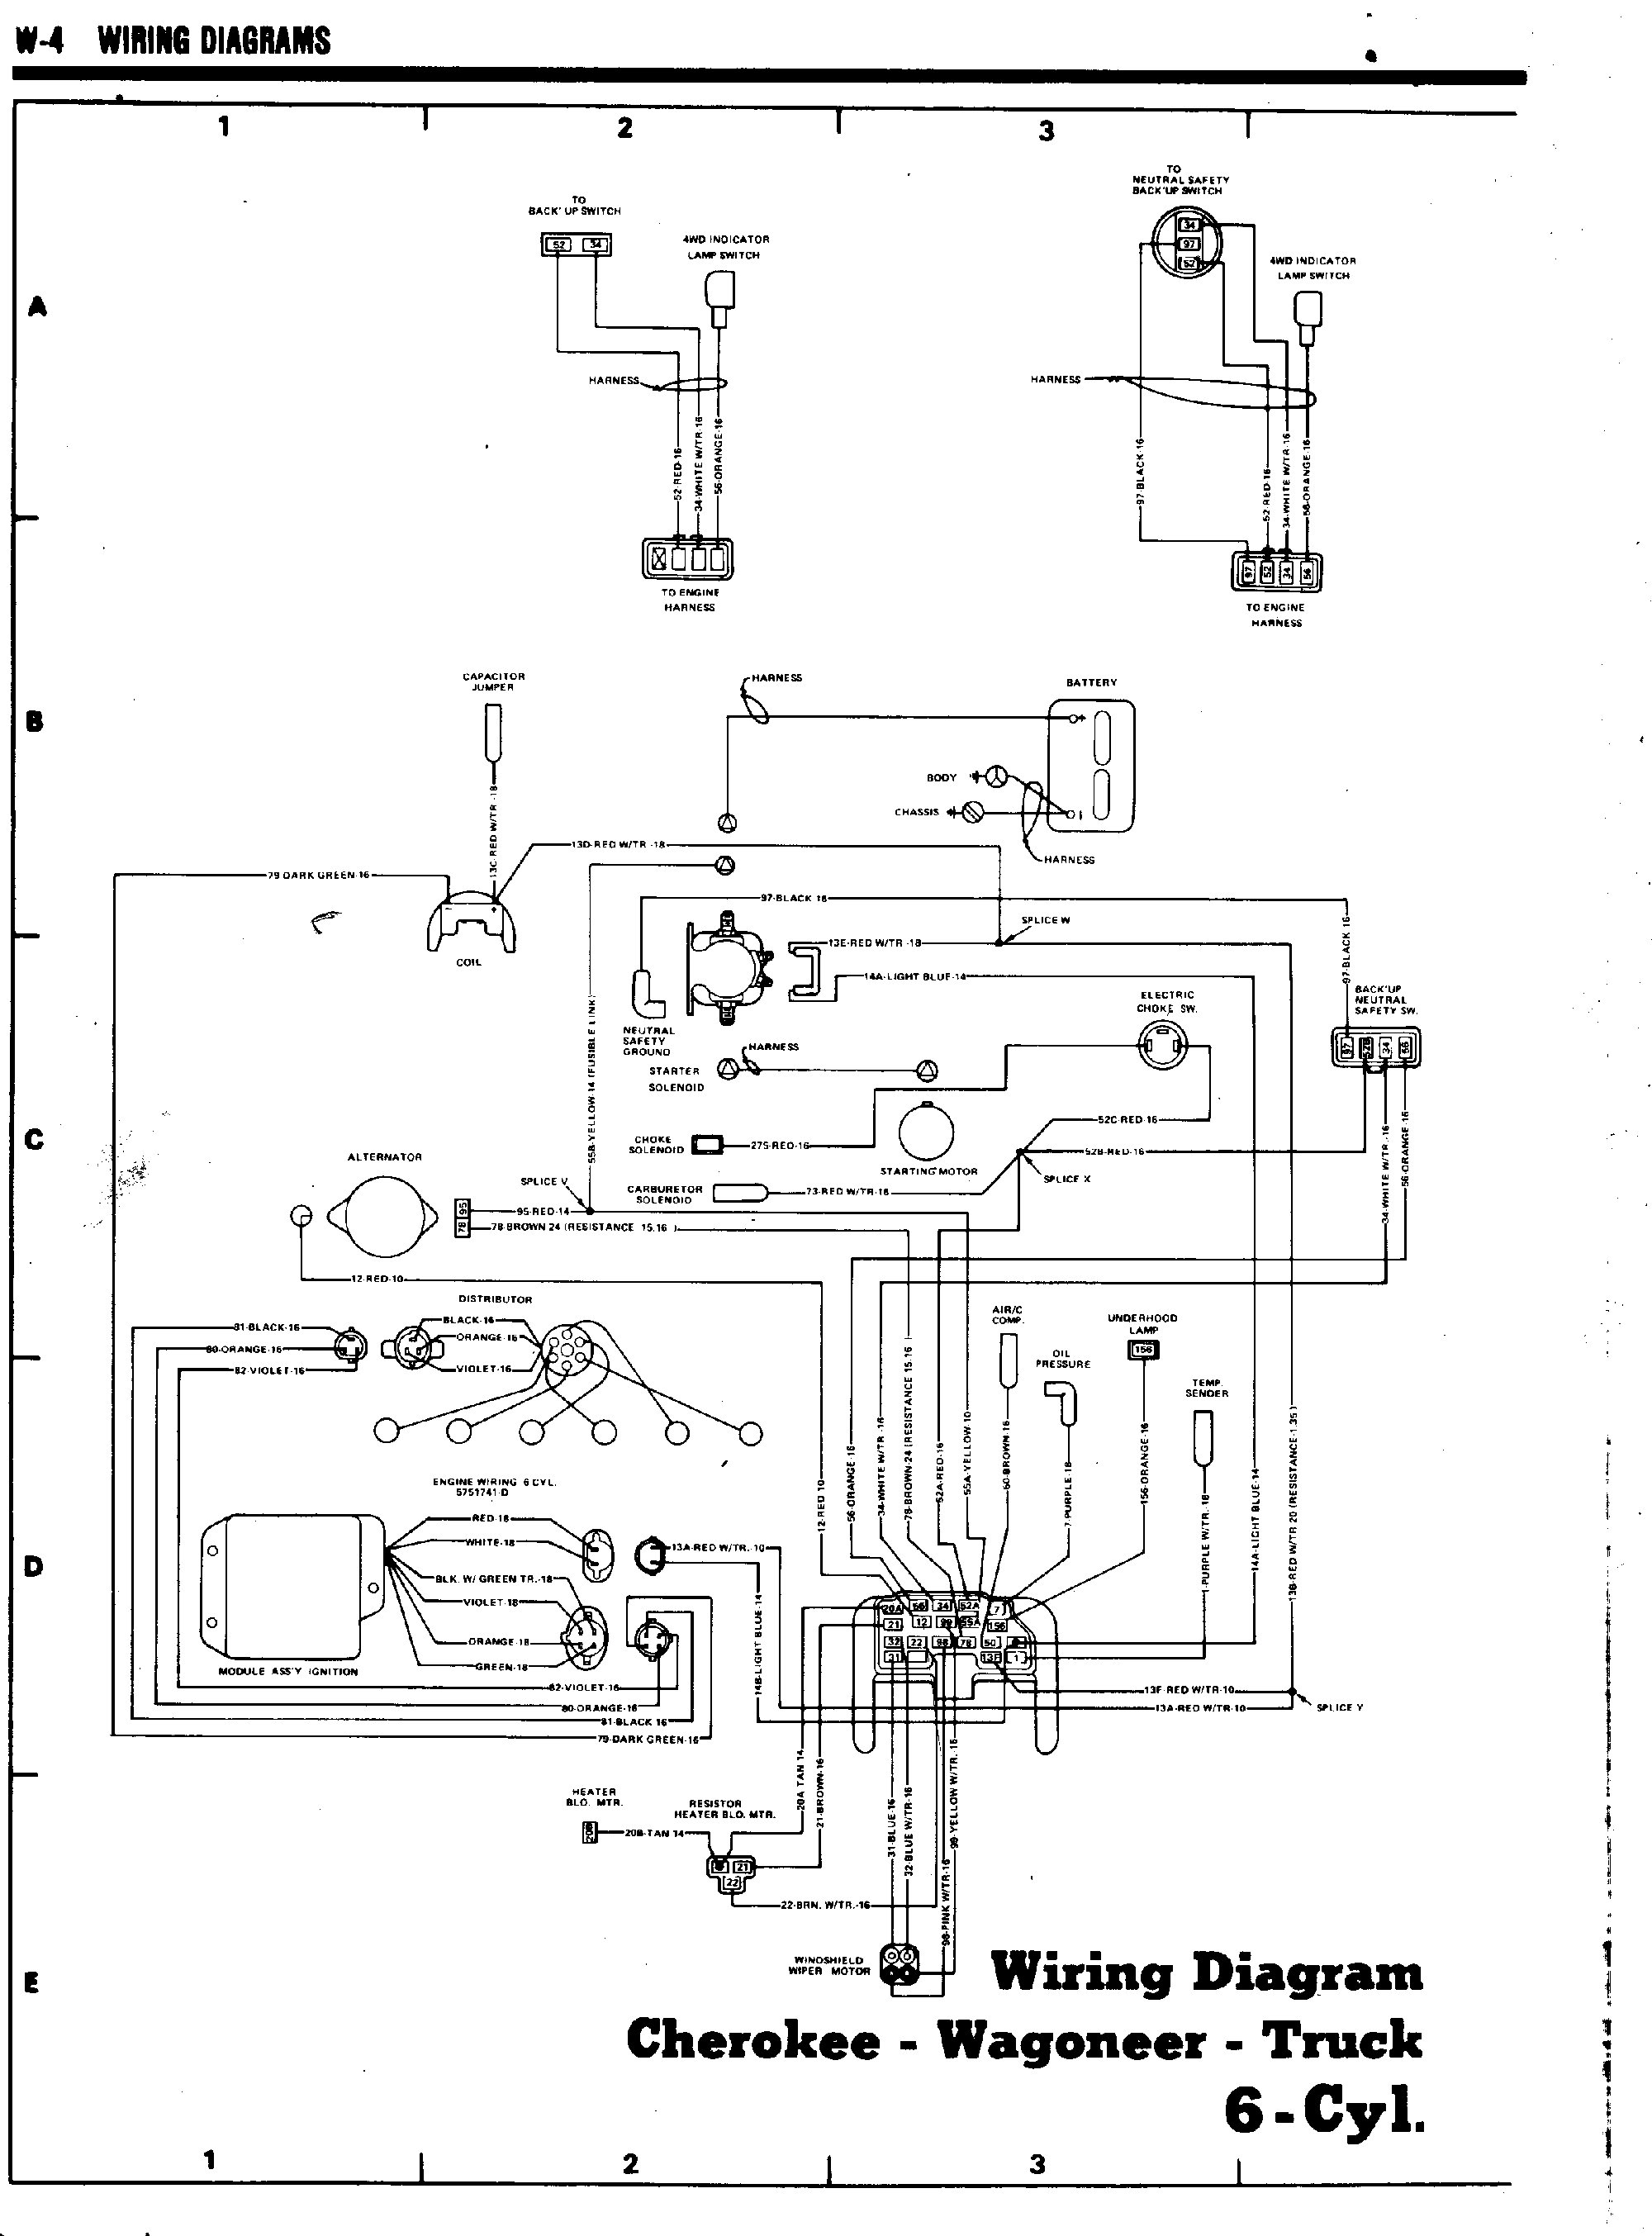 1980_cherokee_wagoneer_truck_6cyl_pg1 tom 'oljeep' collins fsj wiring page 1987 jeep grand wagoneer wiring diagram at edmiracle.co